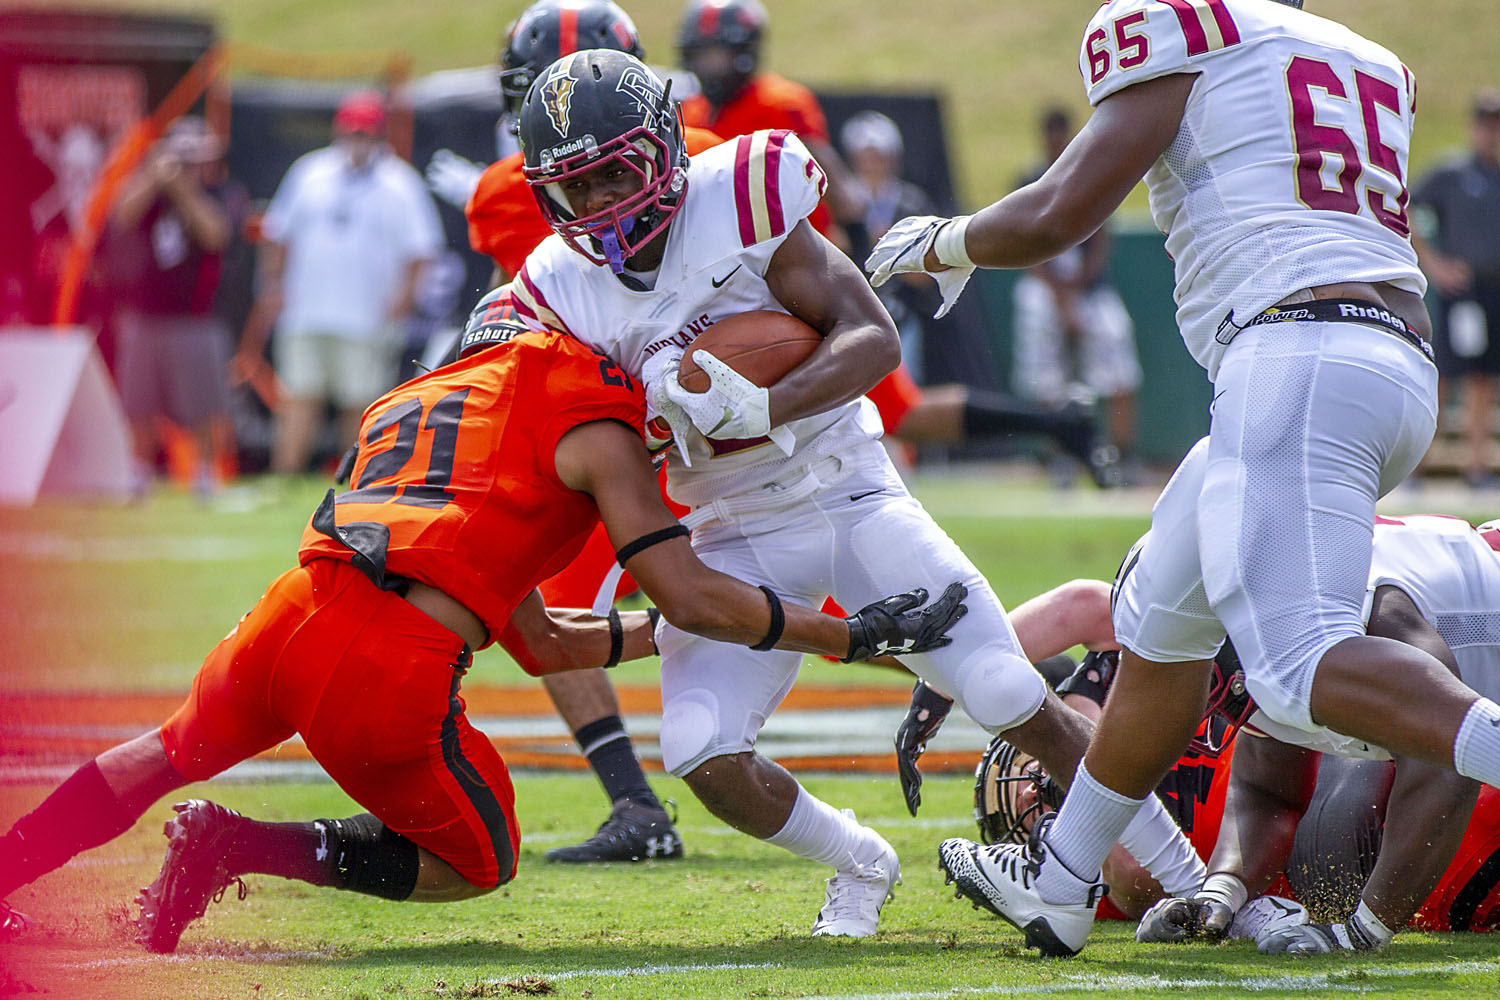 Pinson Valley drops opener to Hoover